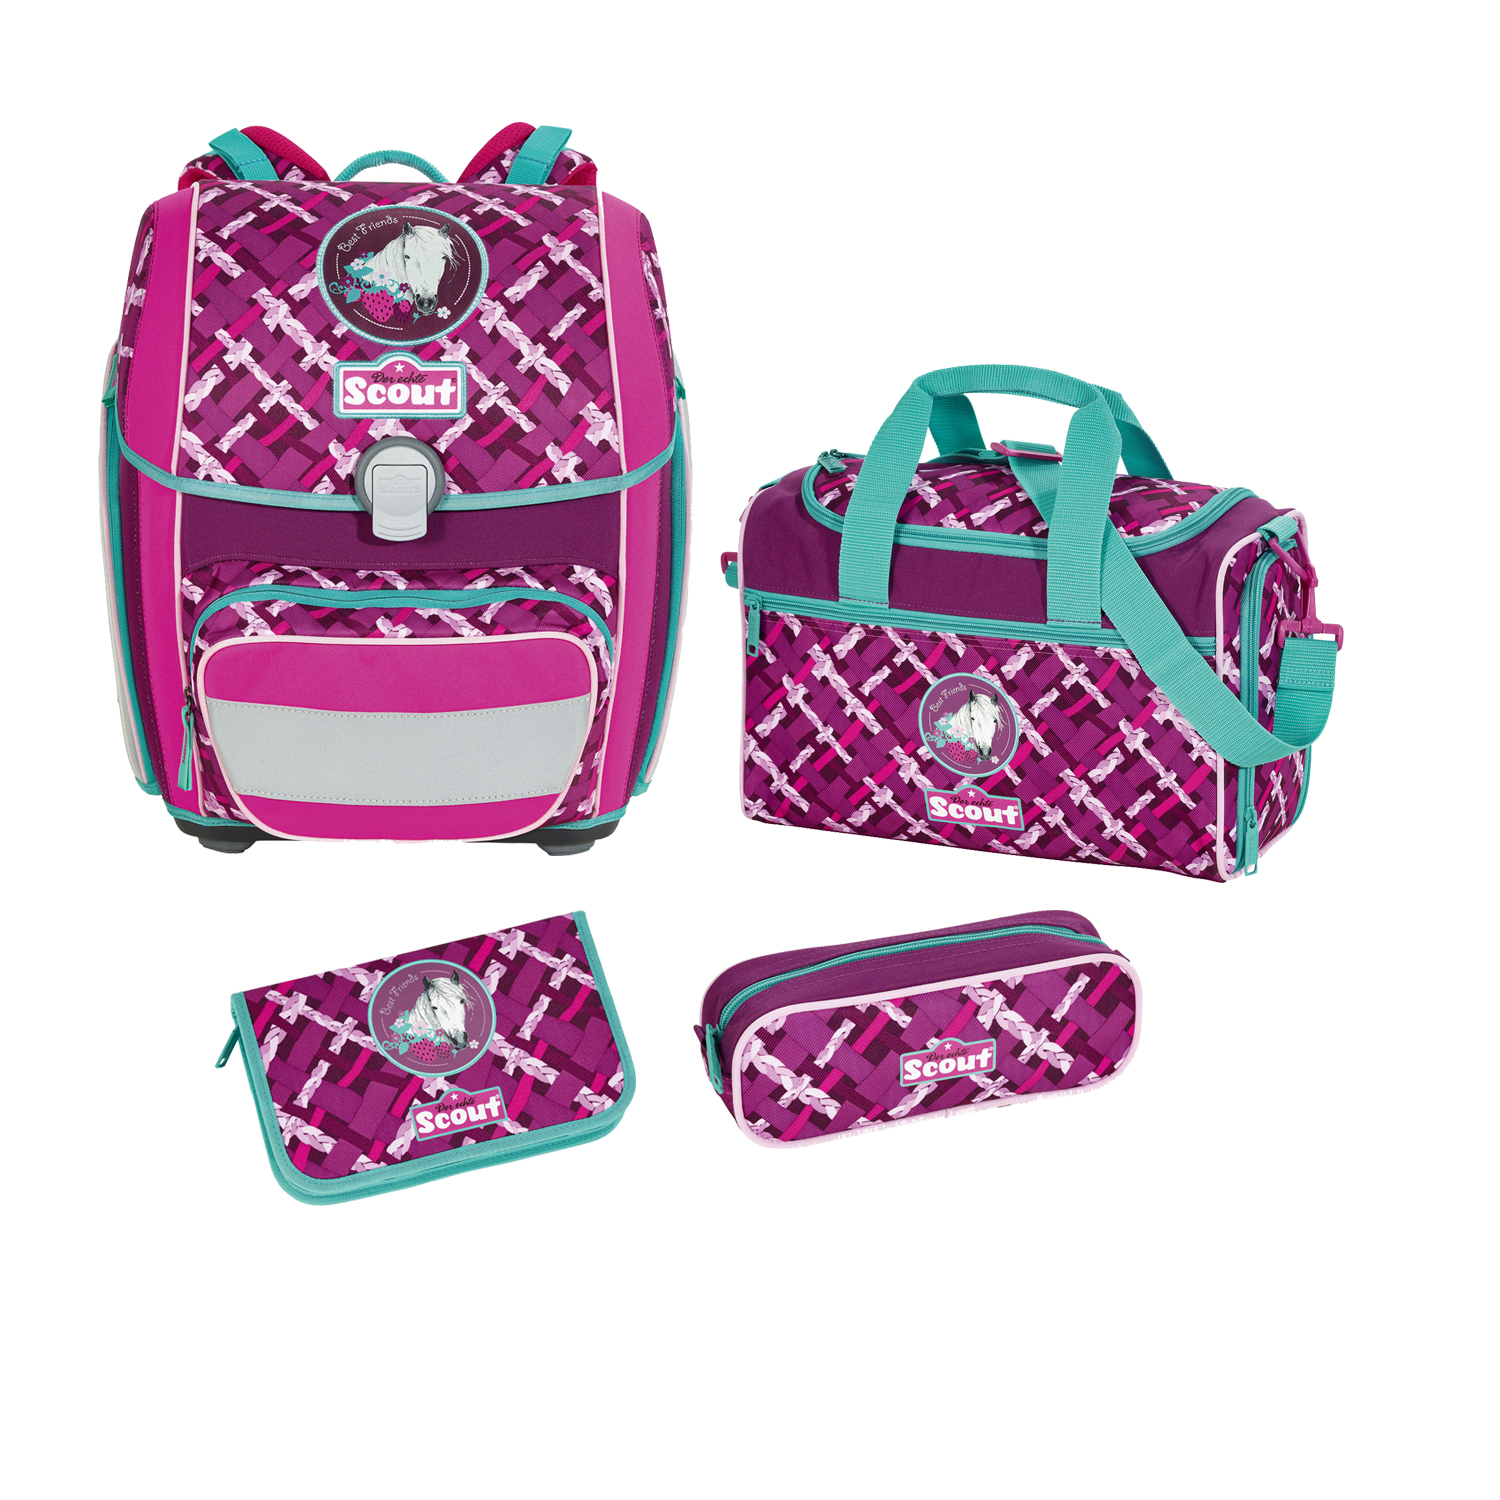 Scout Genius Schulranzen Set 4 tlg Best Friends